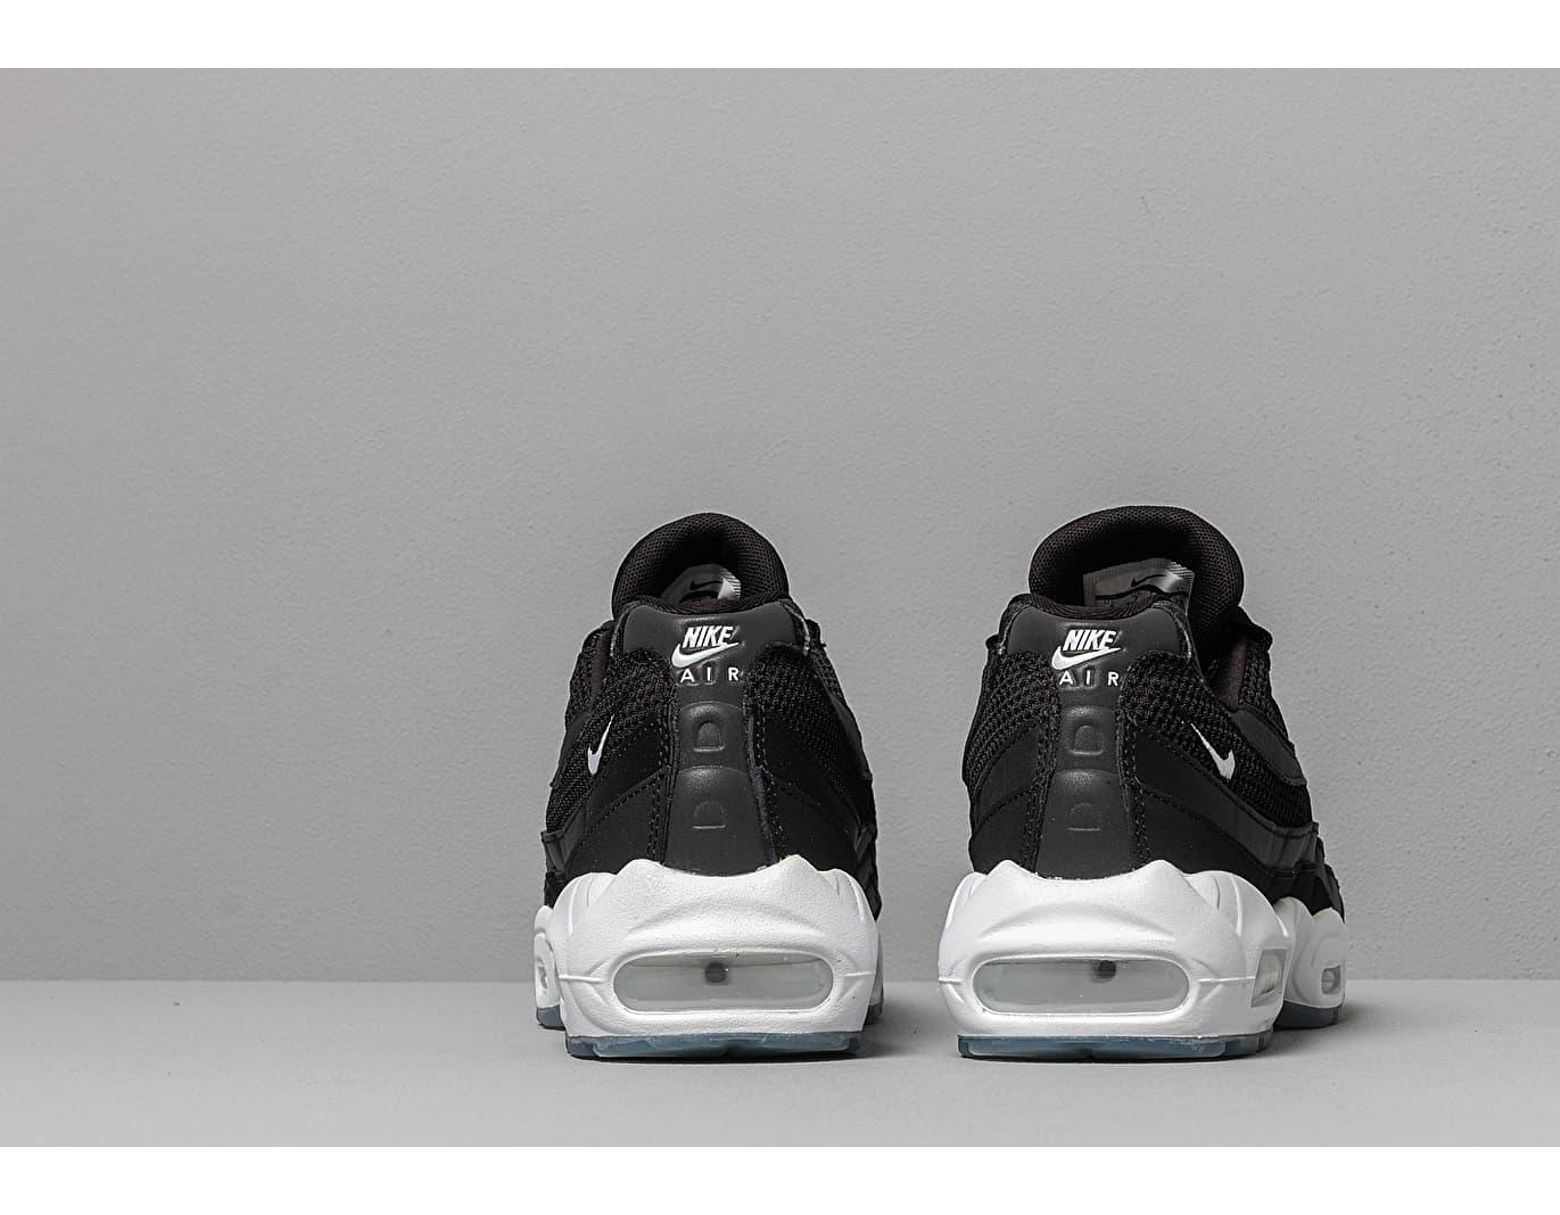 new style ce4fd 032b3 Nike Air Max 95 Essential Black  White-black-reflect Silver in Black for  Men - Lyst